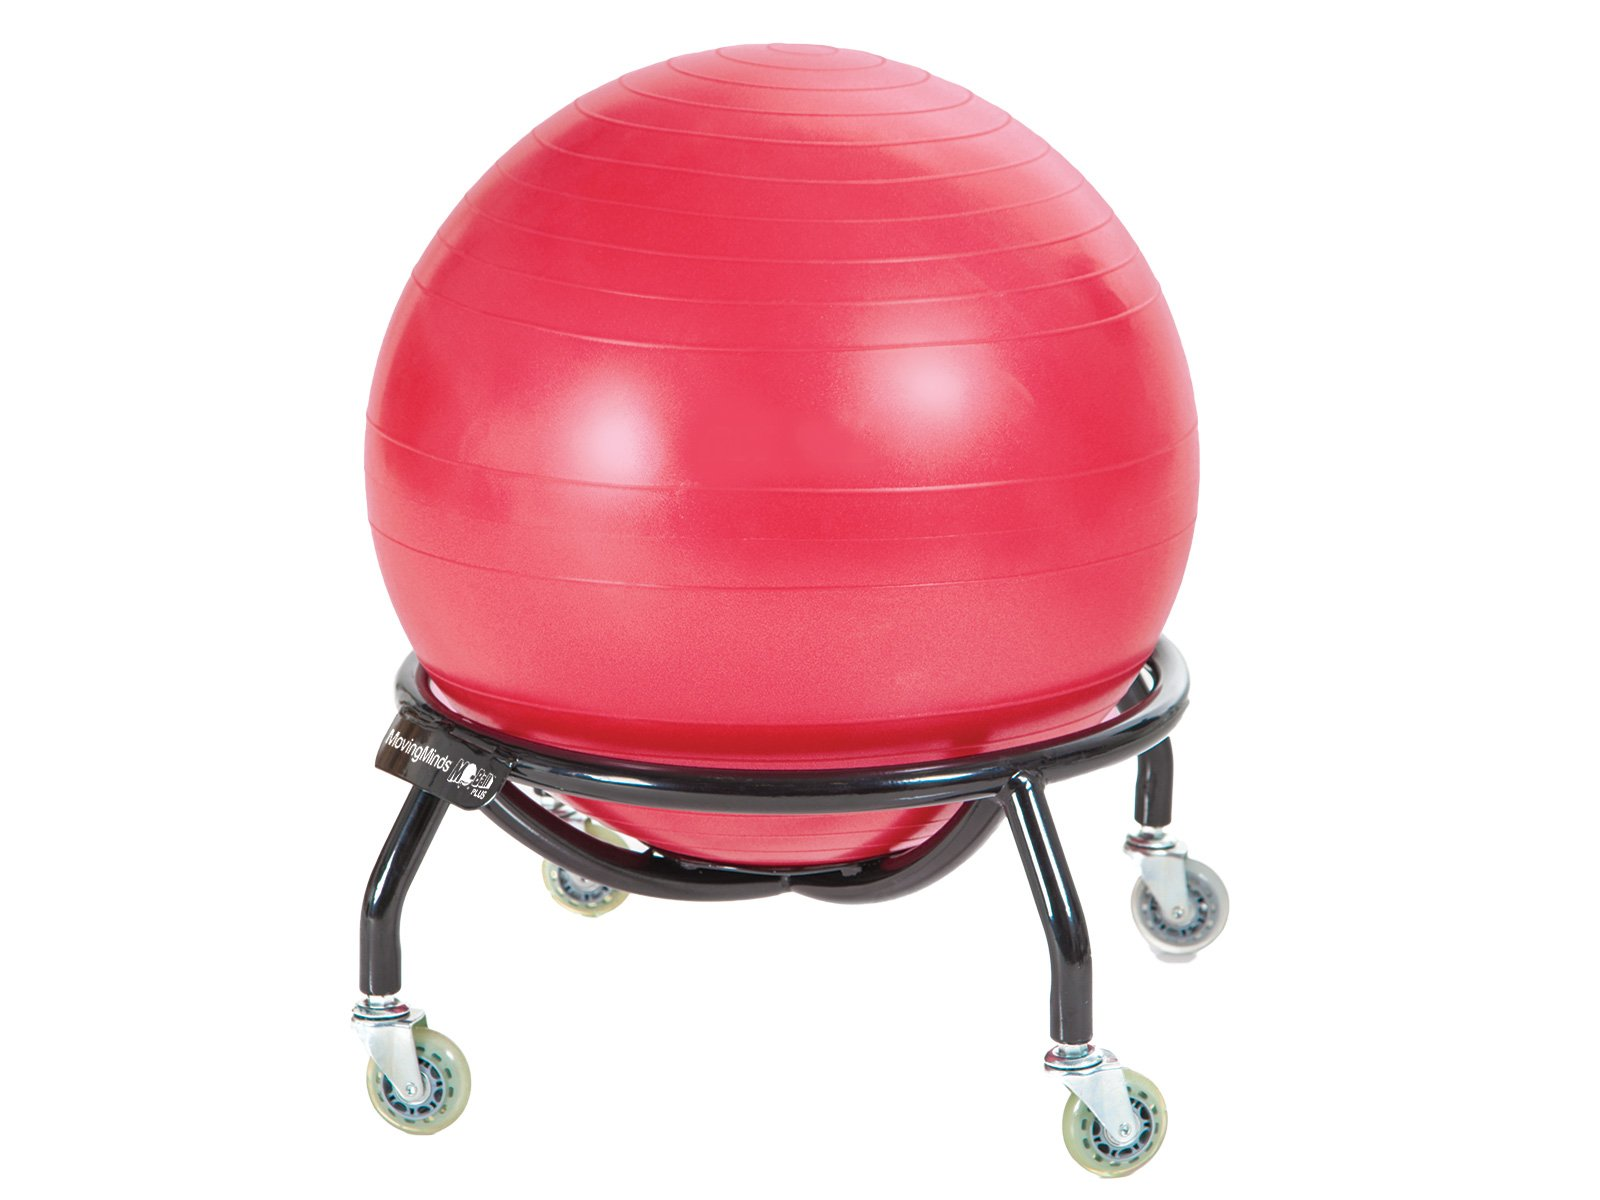 Ball Chair Mo-ball Plus Stability Ball Chair - Moving Minds